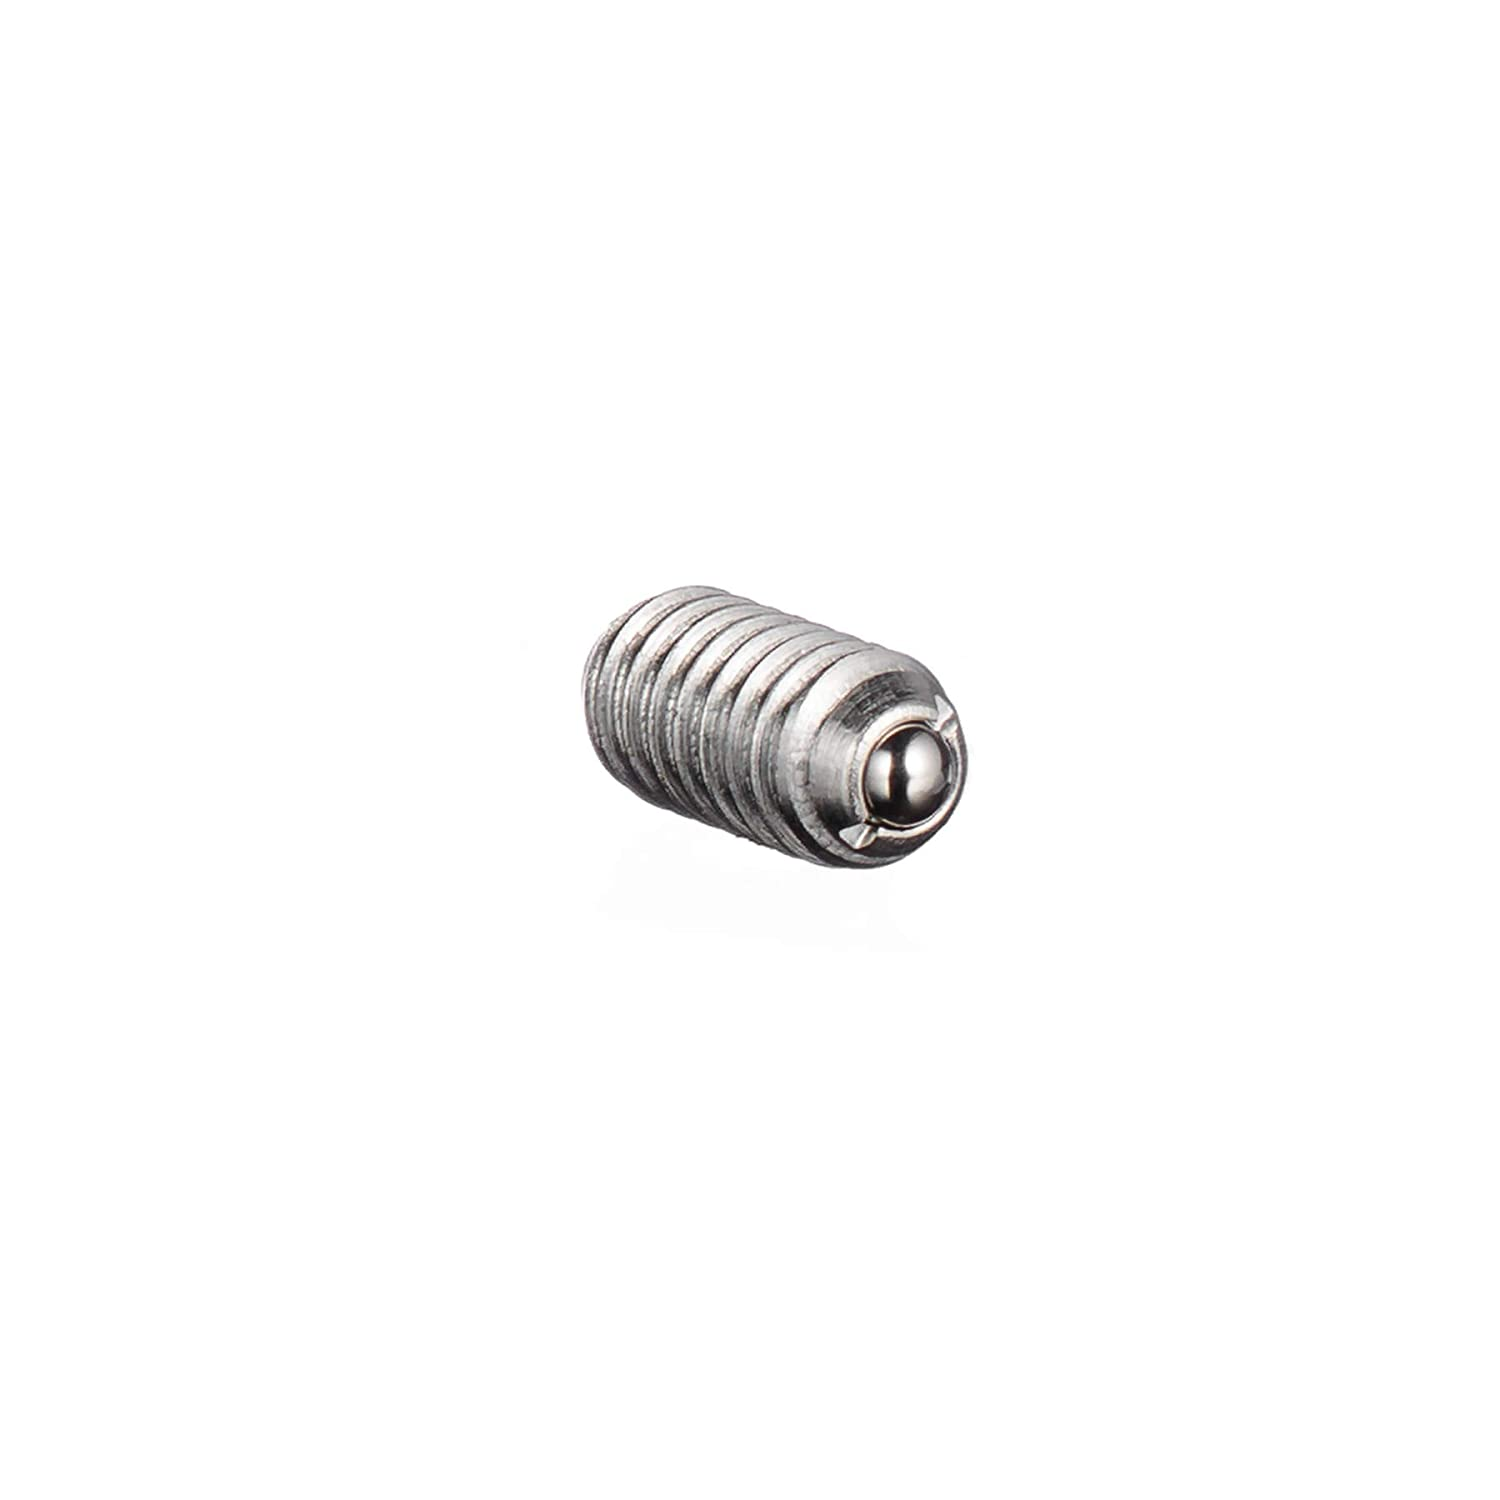 VLIER SSBL52P STAINLESS STEEL SPRING LOADED BALL PLUNGER LIGHT END FORCE LOCKING THREAD STAINLESS STEEL COATING CUT CUTTING ANGLE FLUTE